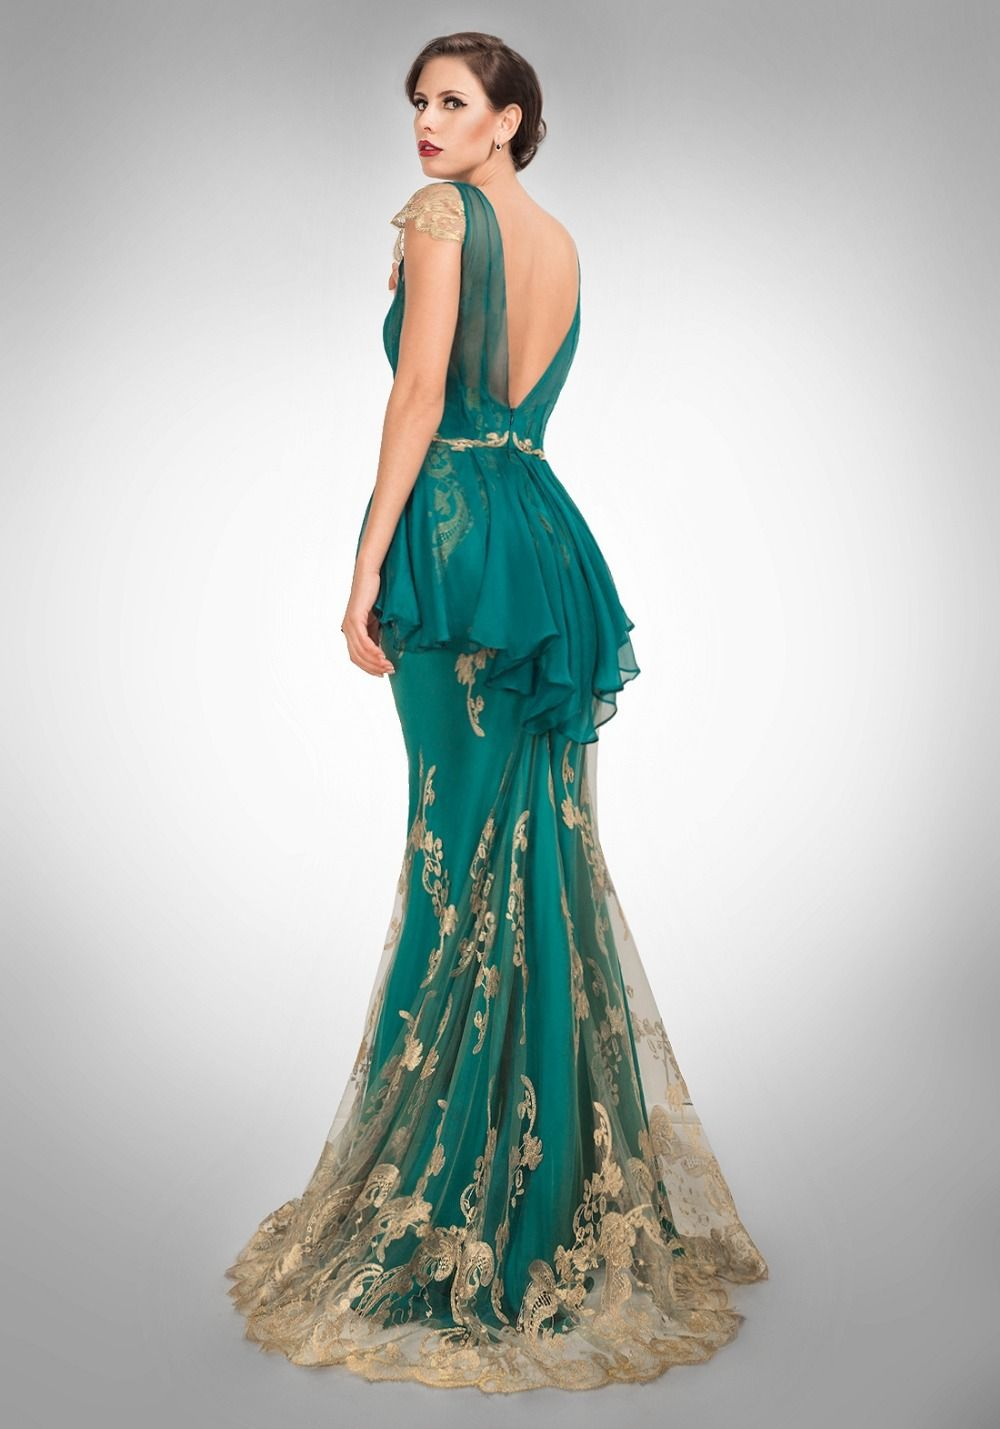 Teal Dress With Gold | Dresses | Pinterest | Teal dresses, Teal and Gold